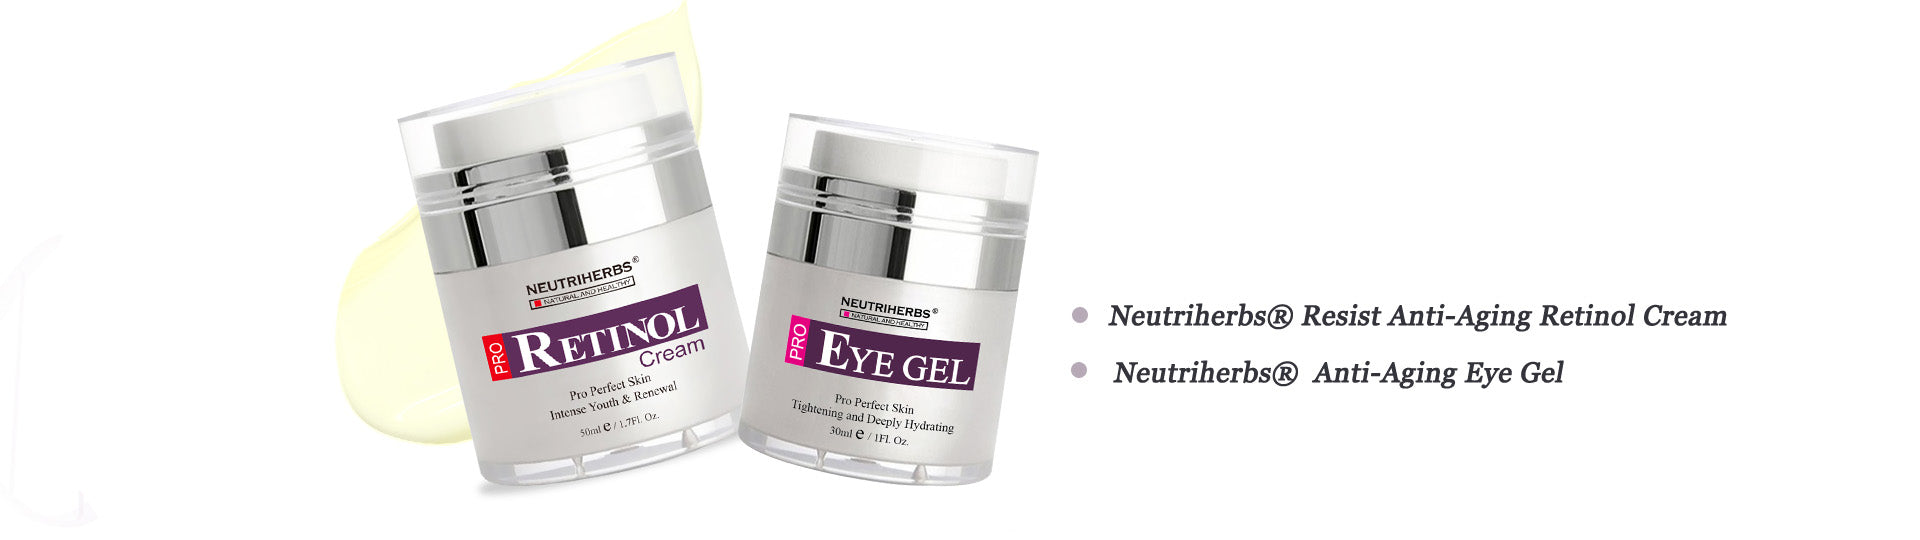 retinol-face-cream-retinol-night-cream-antiagingeyecream-eyelash-serum-faq